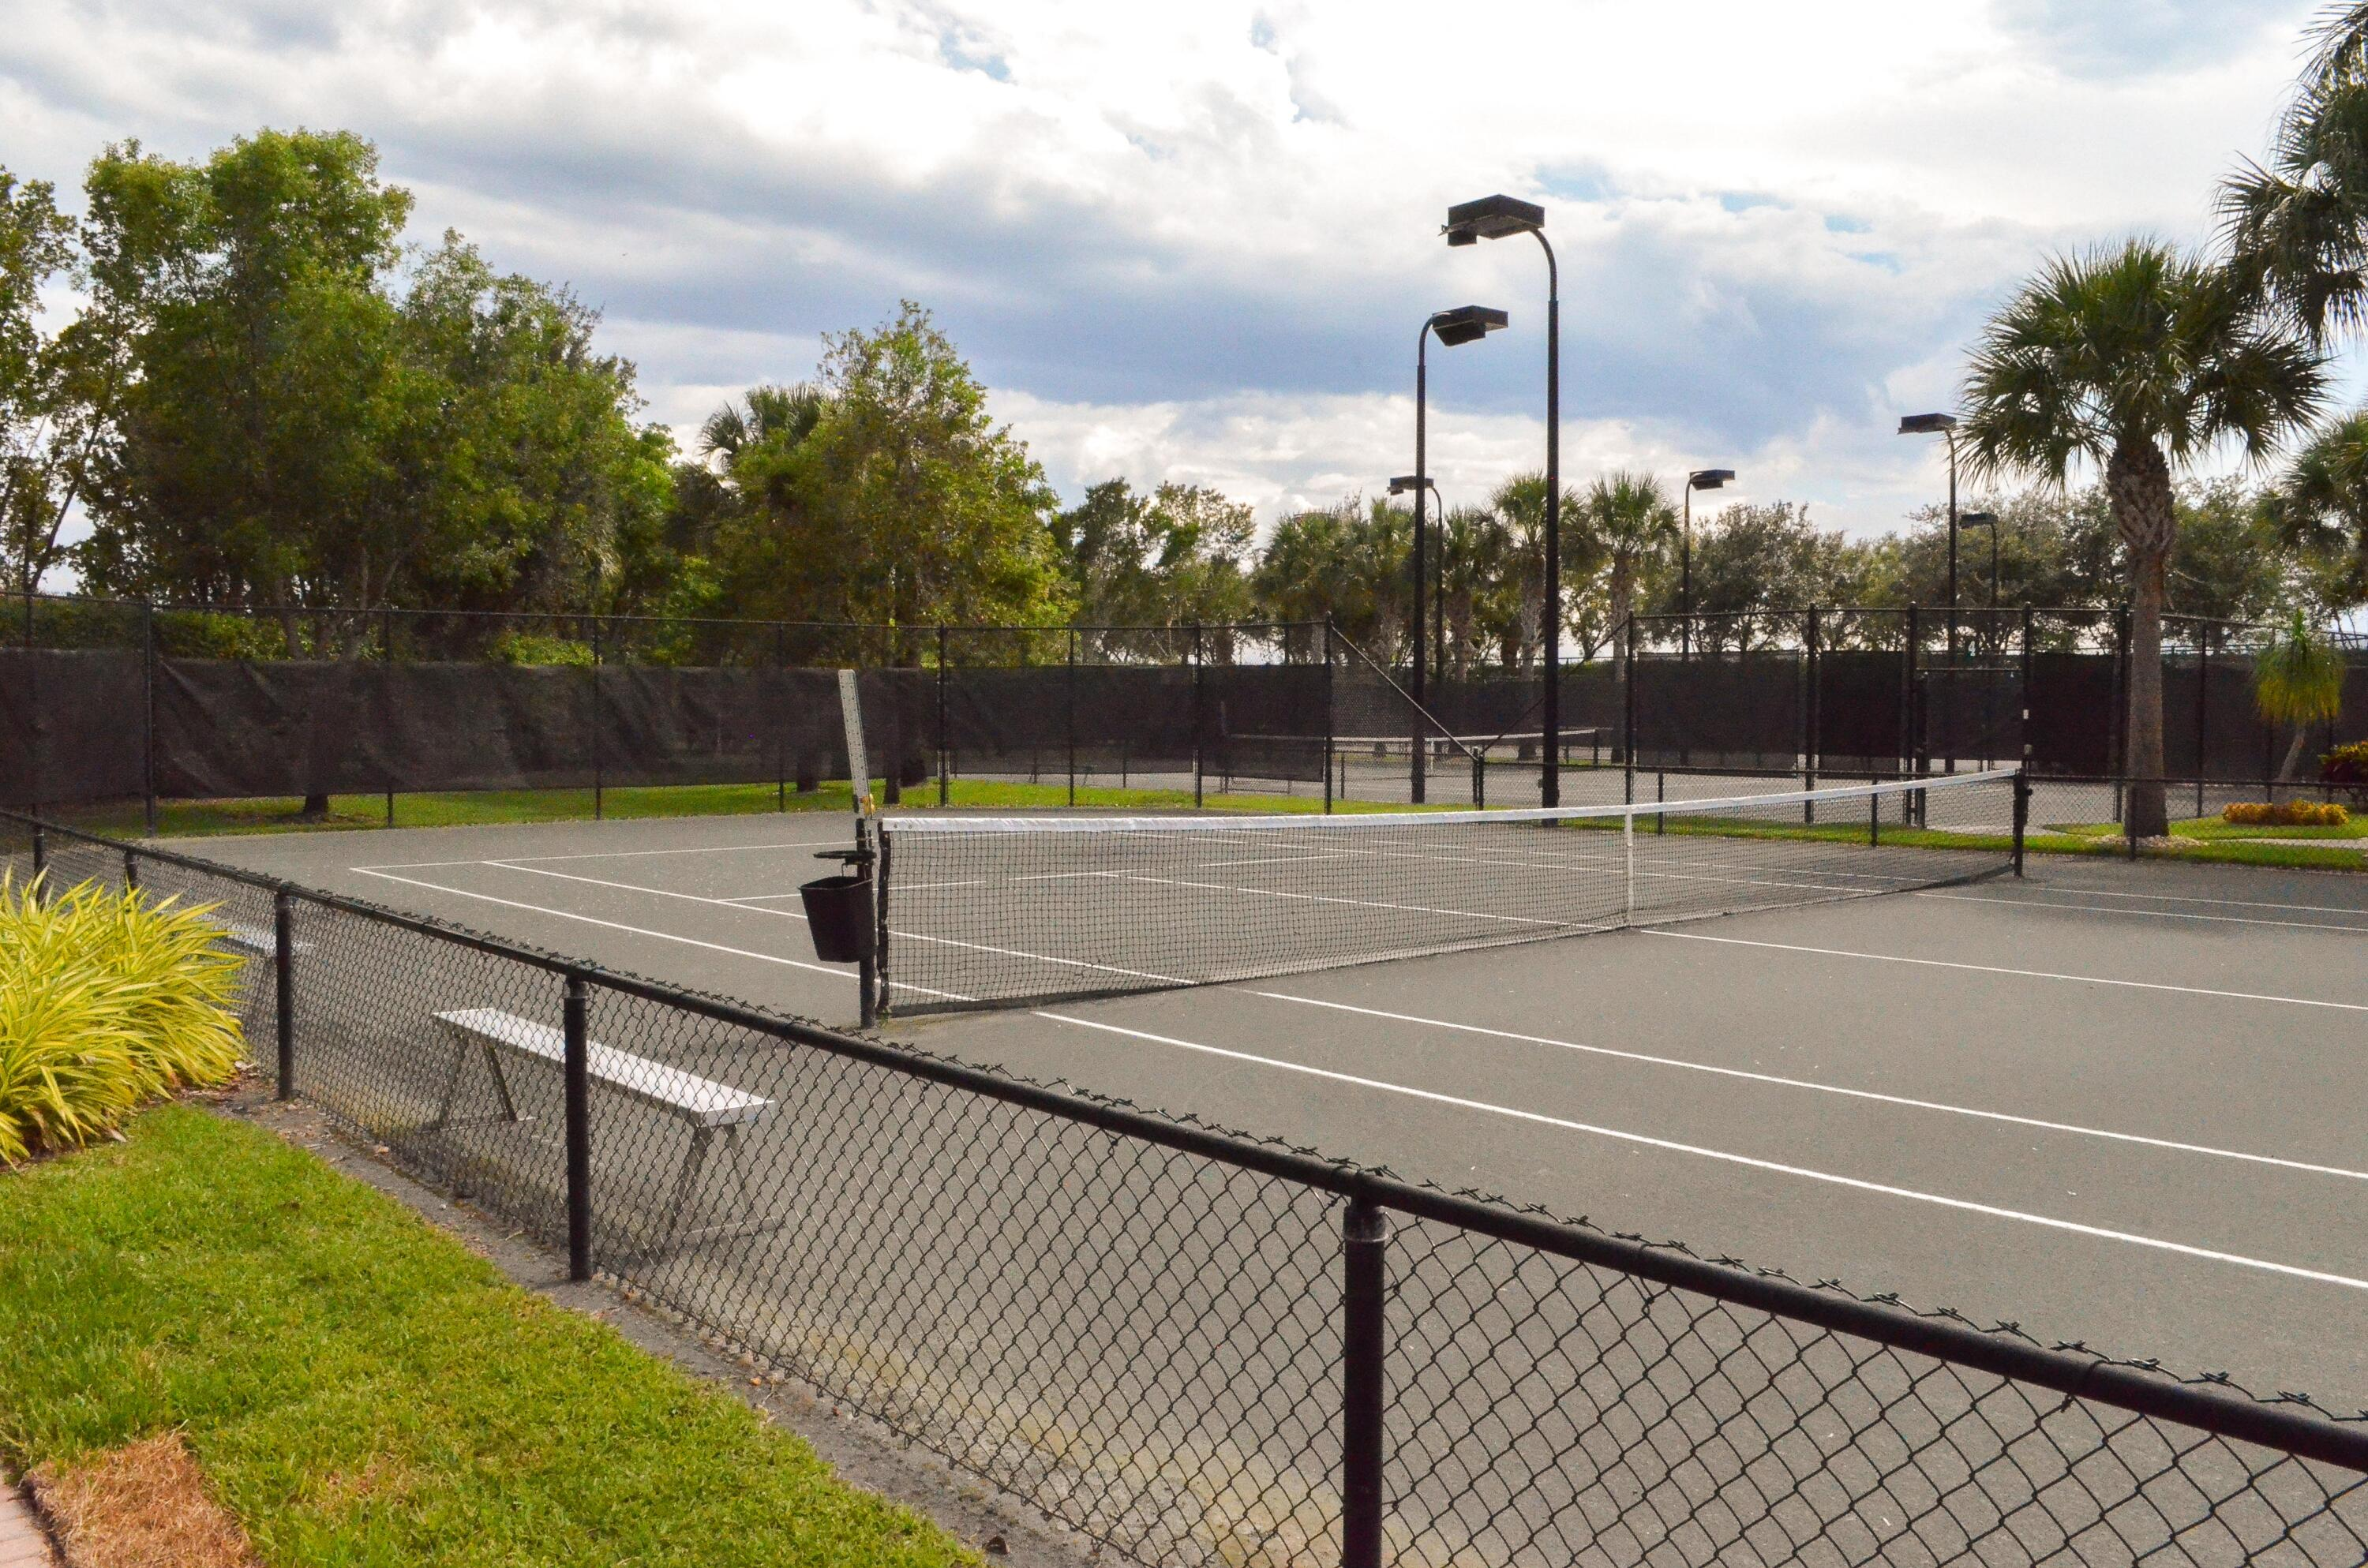 Six Tennis Courts